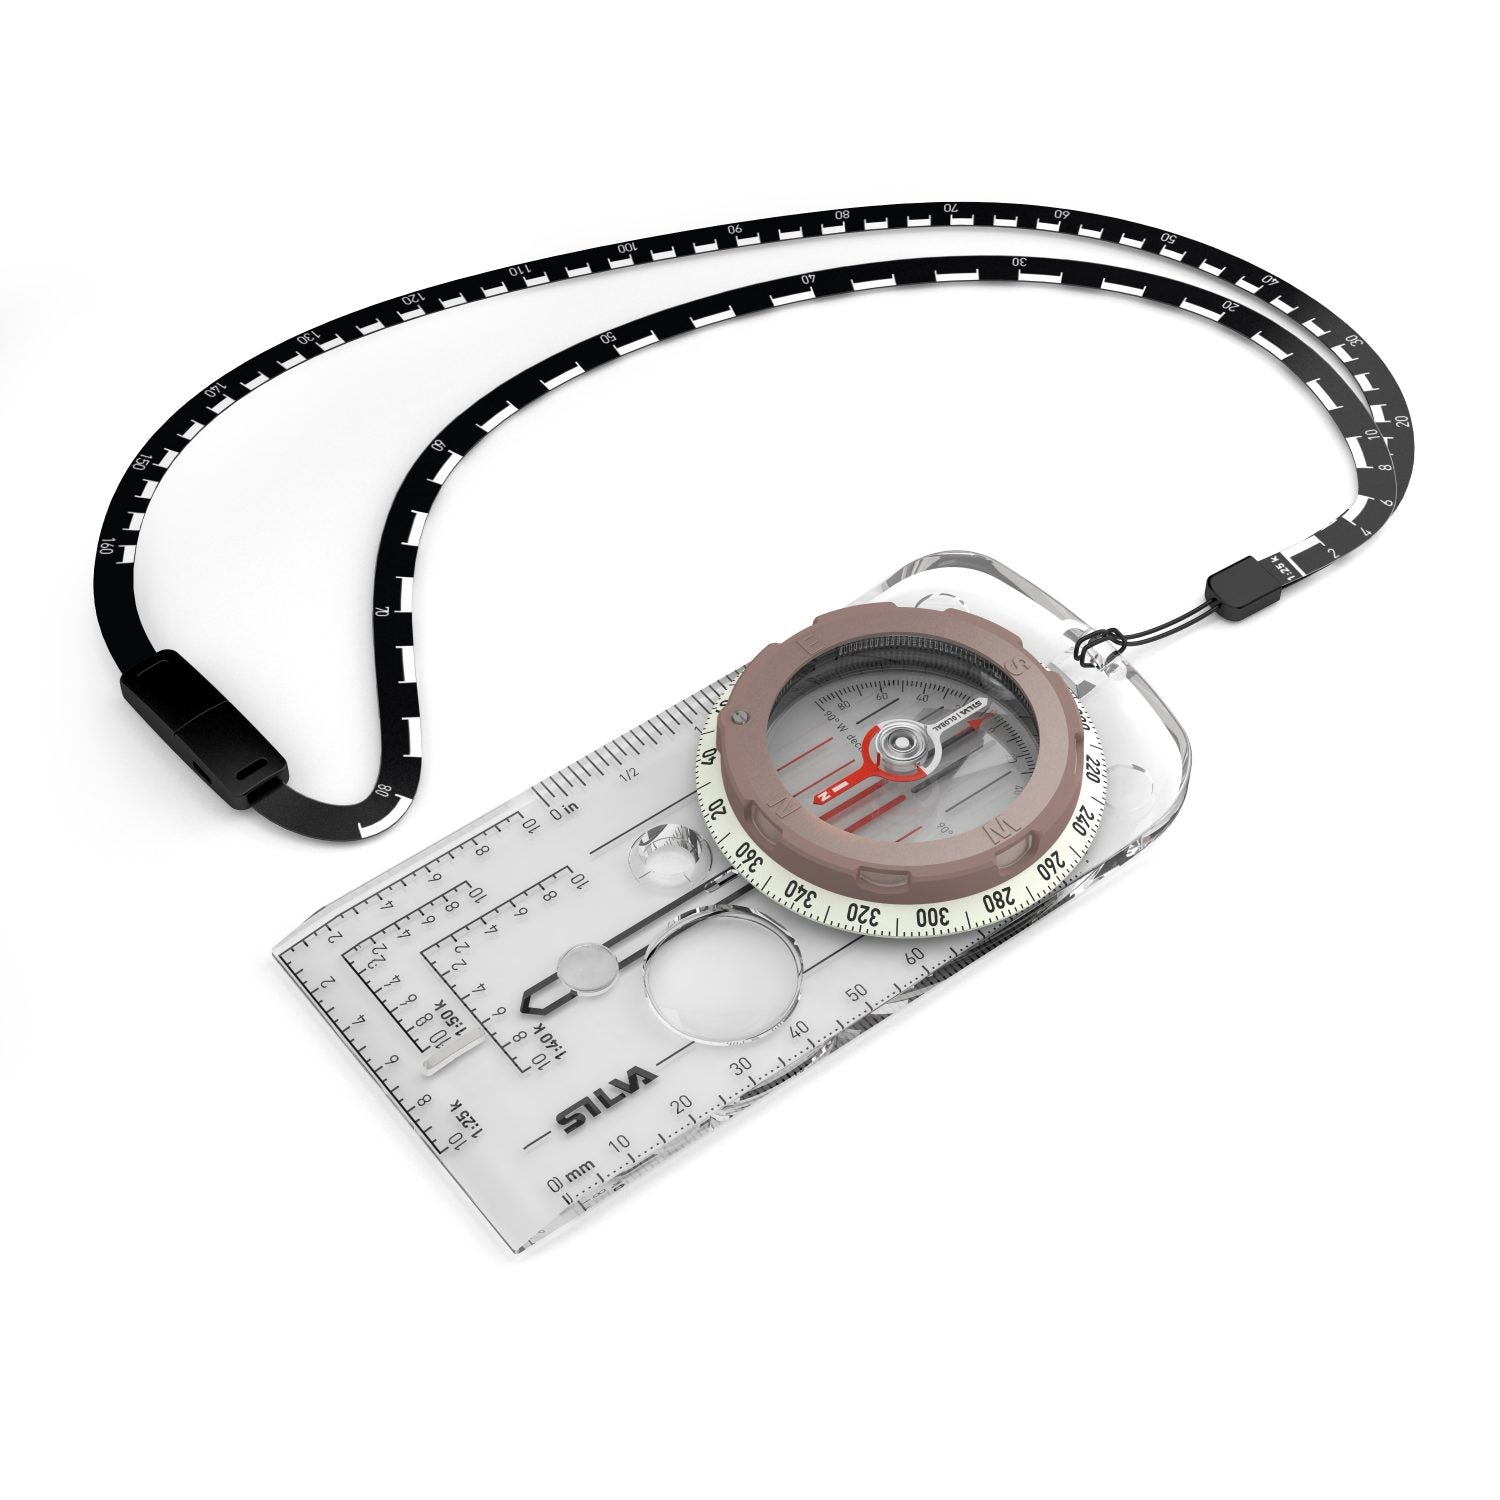 Silva Expedition 360 Global compass shown with lanyard